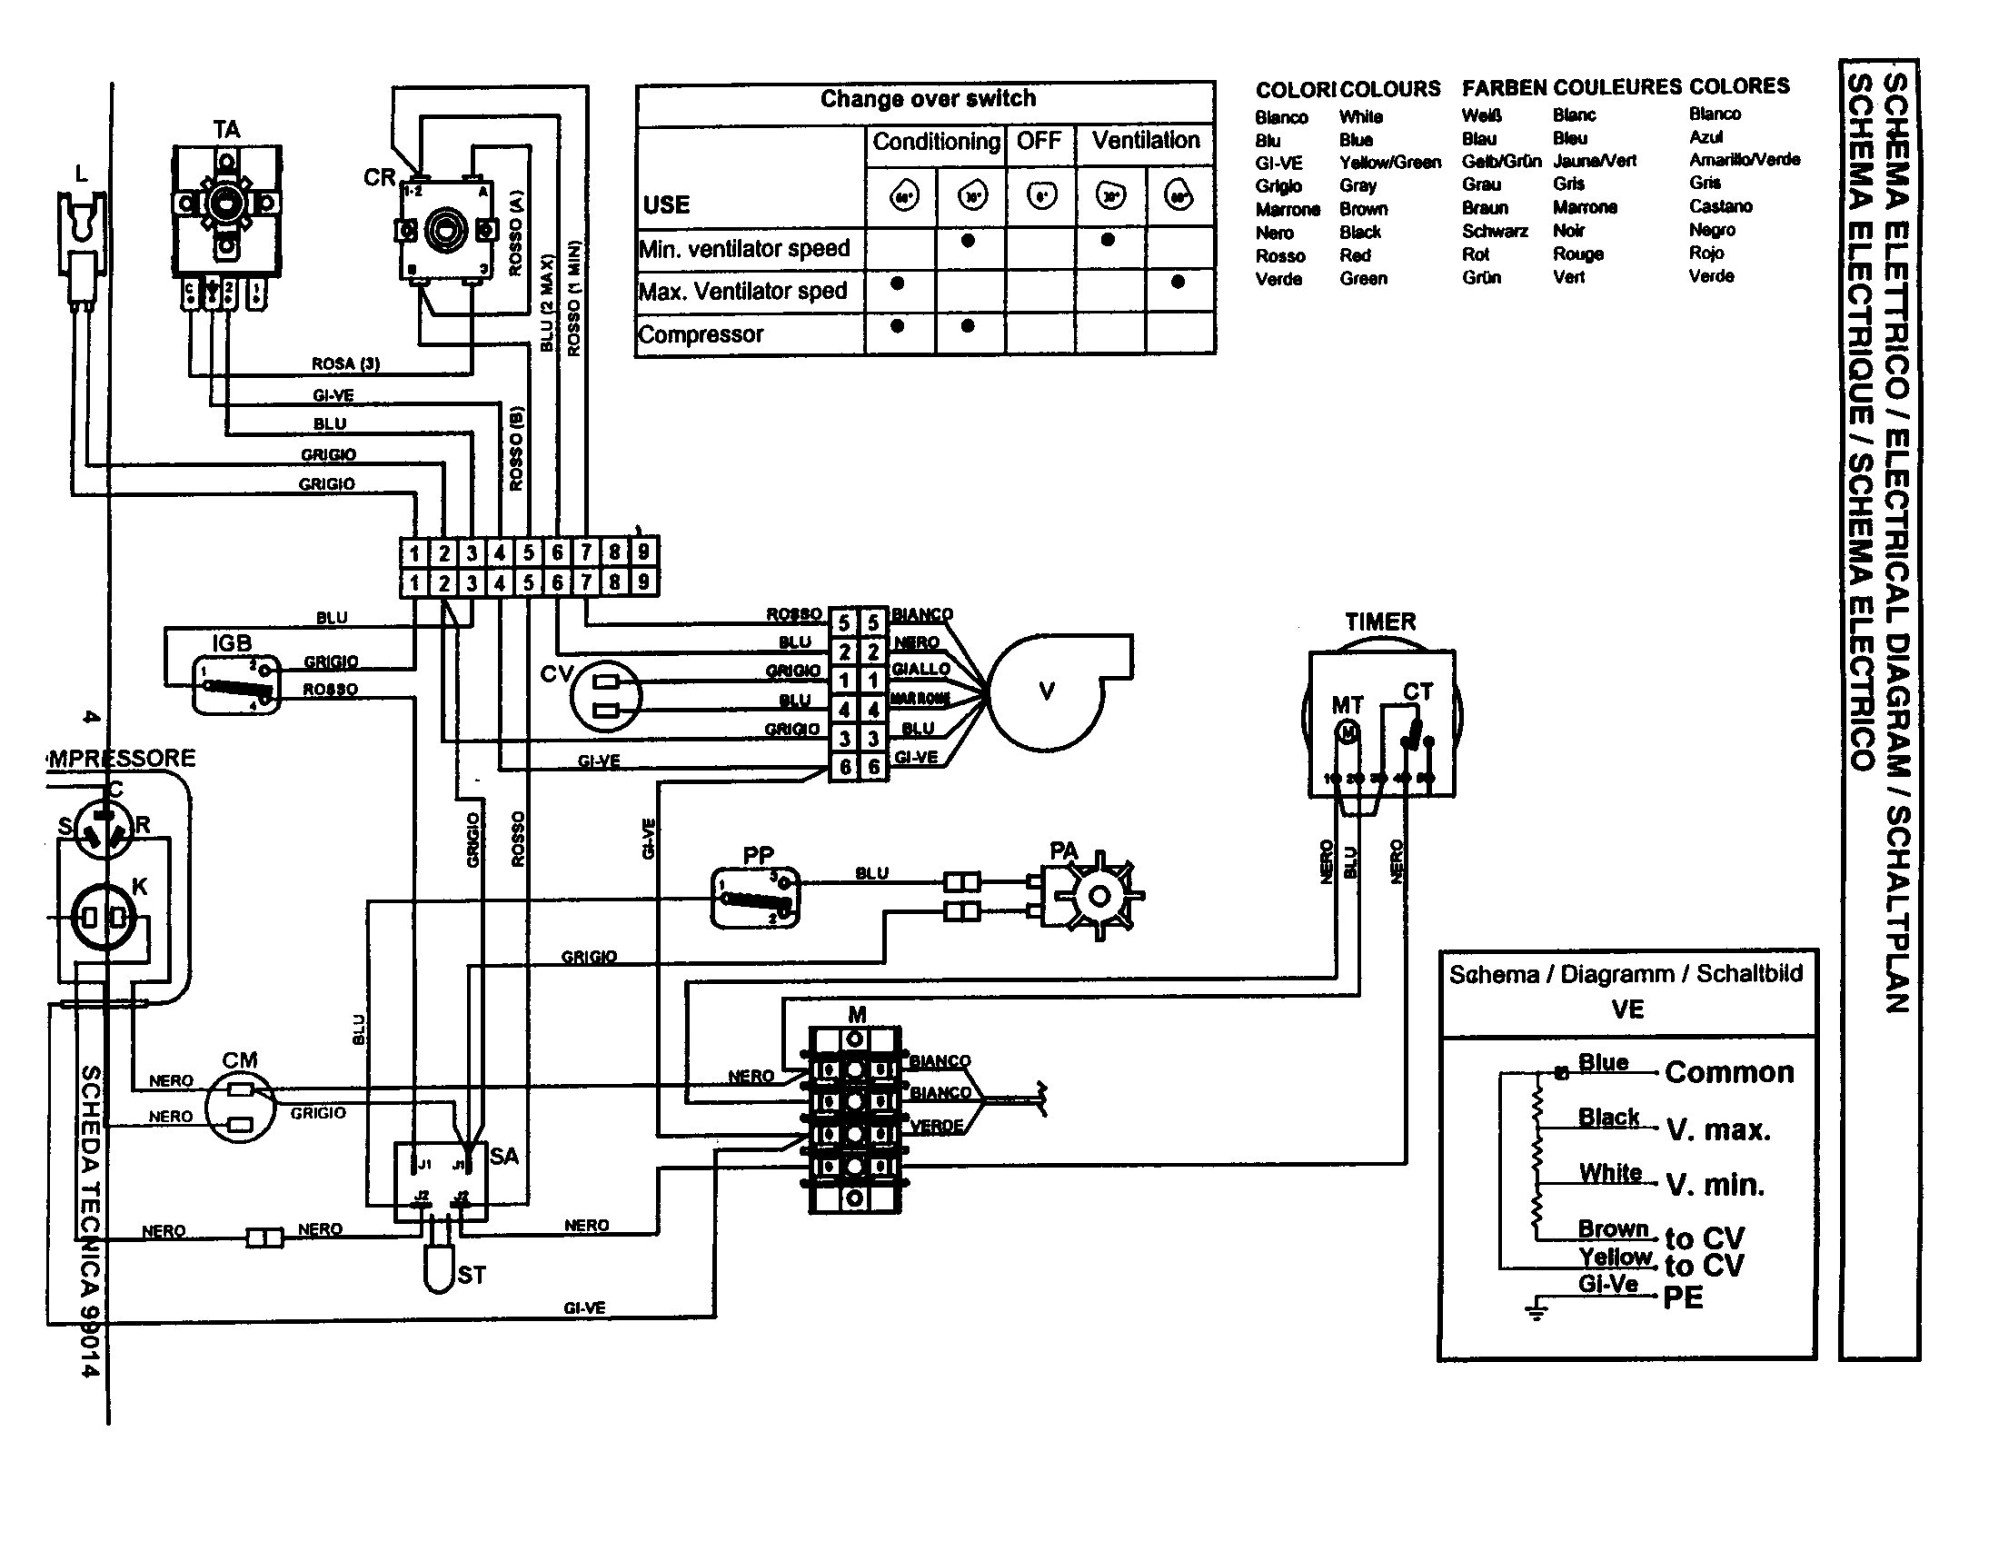 hight resolution of central air conditioner wiring diagram central air conditioner wiring diagram best wiring diagram simple hvac